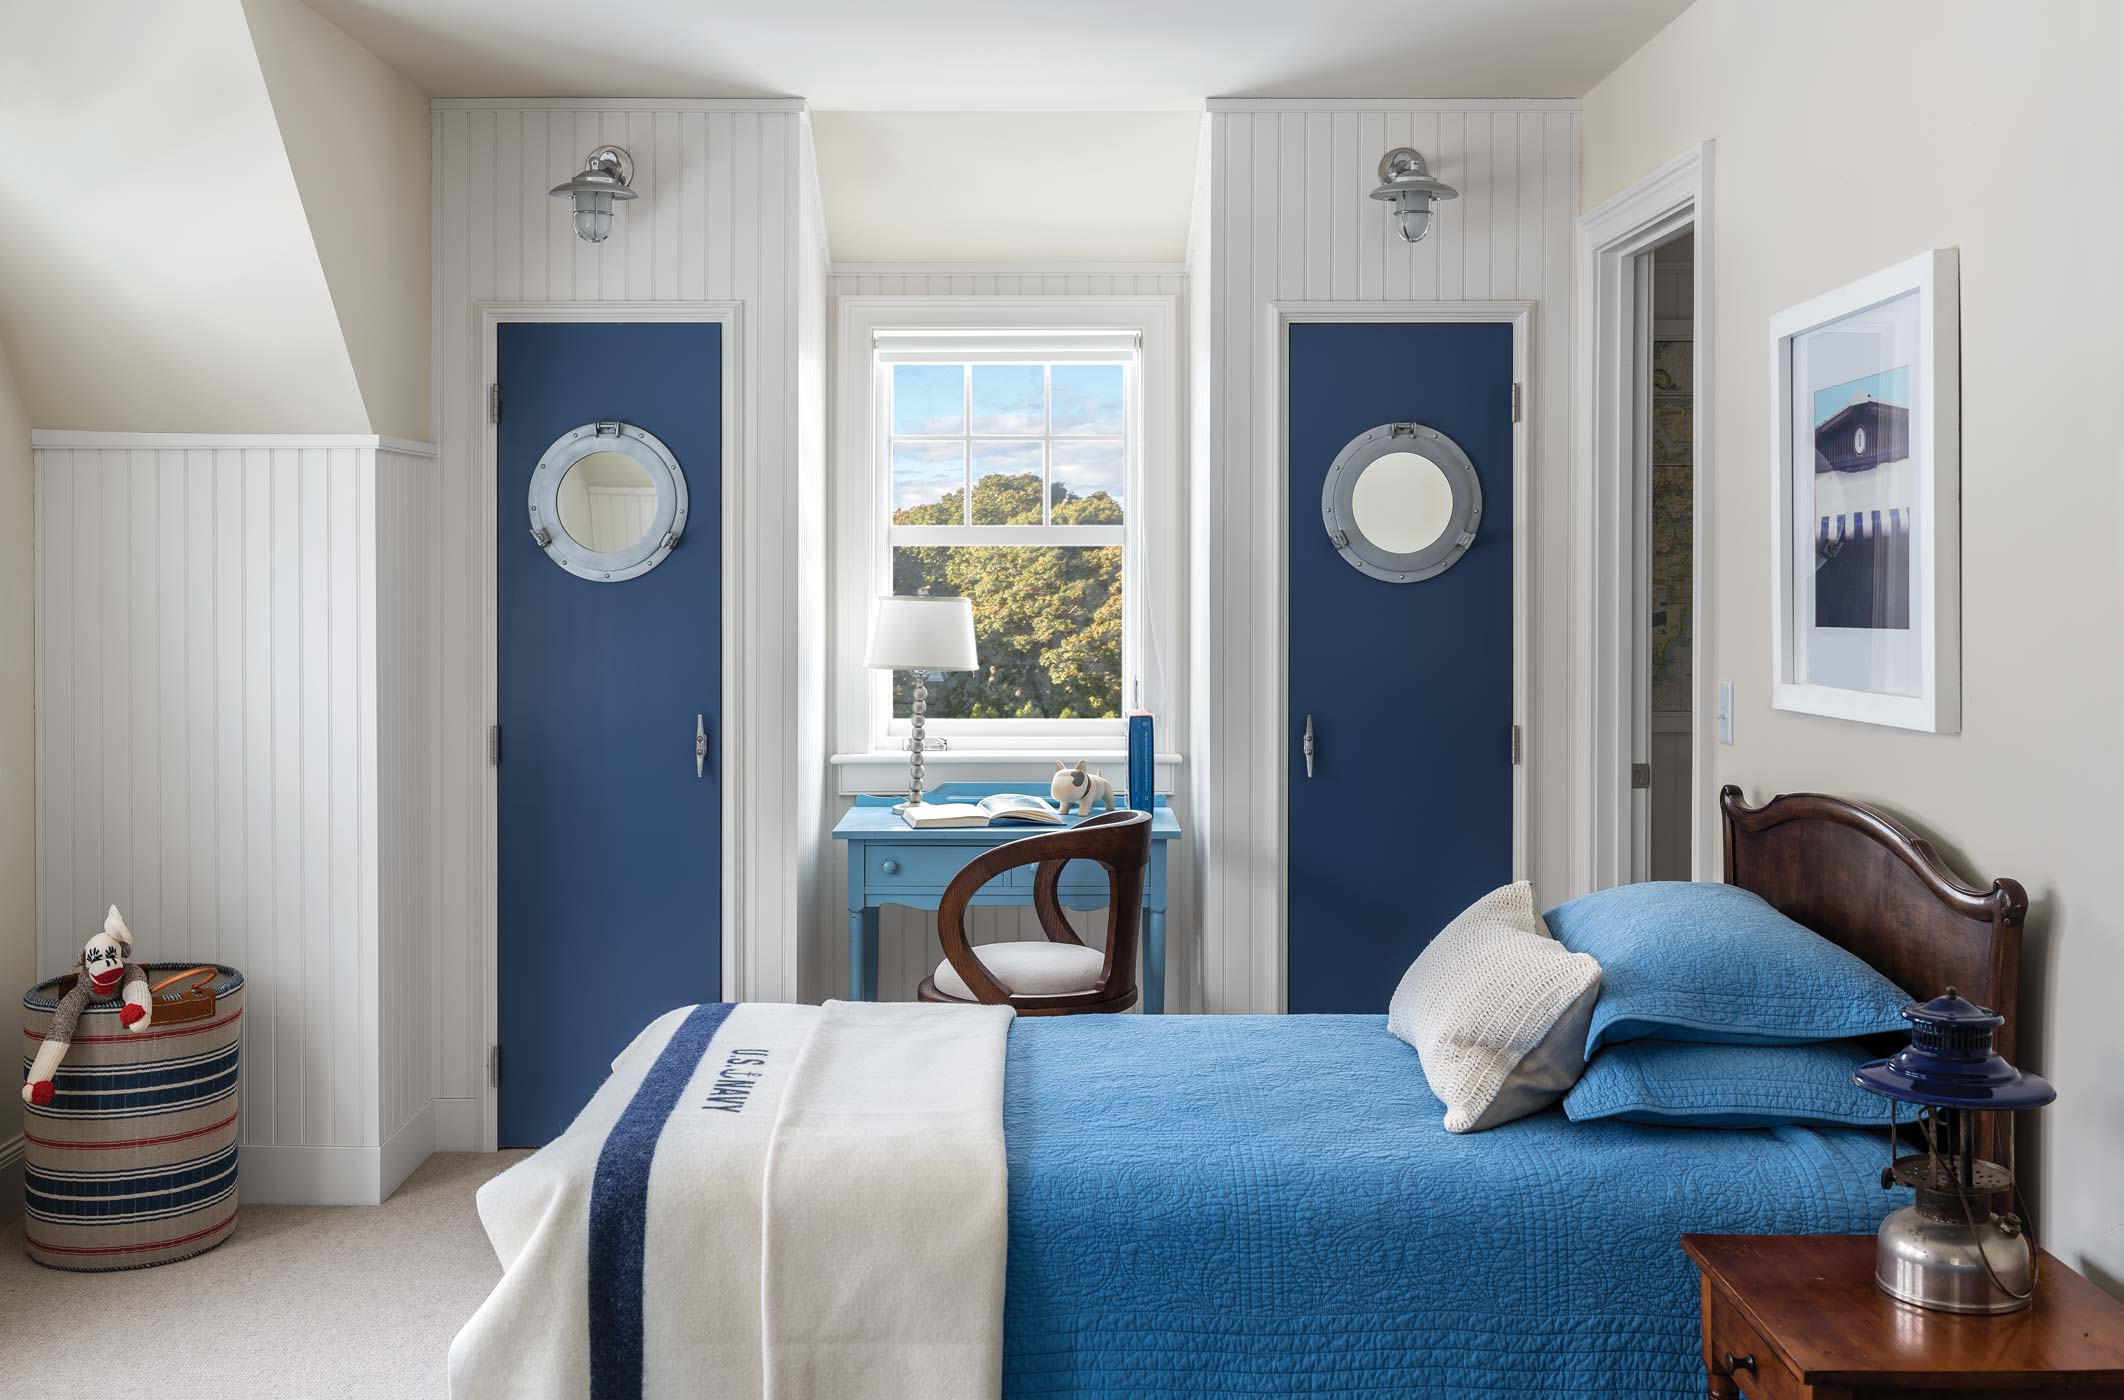 In the grandchildren's room, witty details such as porthole mirrors, ship lights, and boat cleat handles recall a ship's berth. All fixtures and decor are from Simply Home.